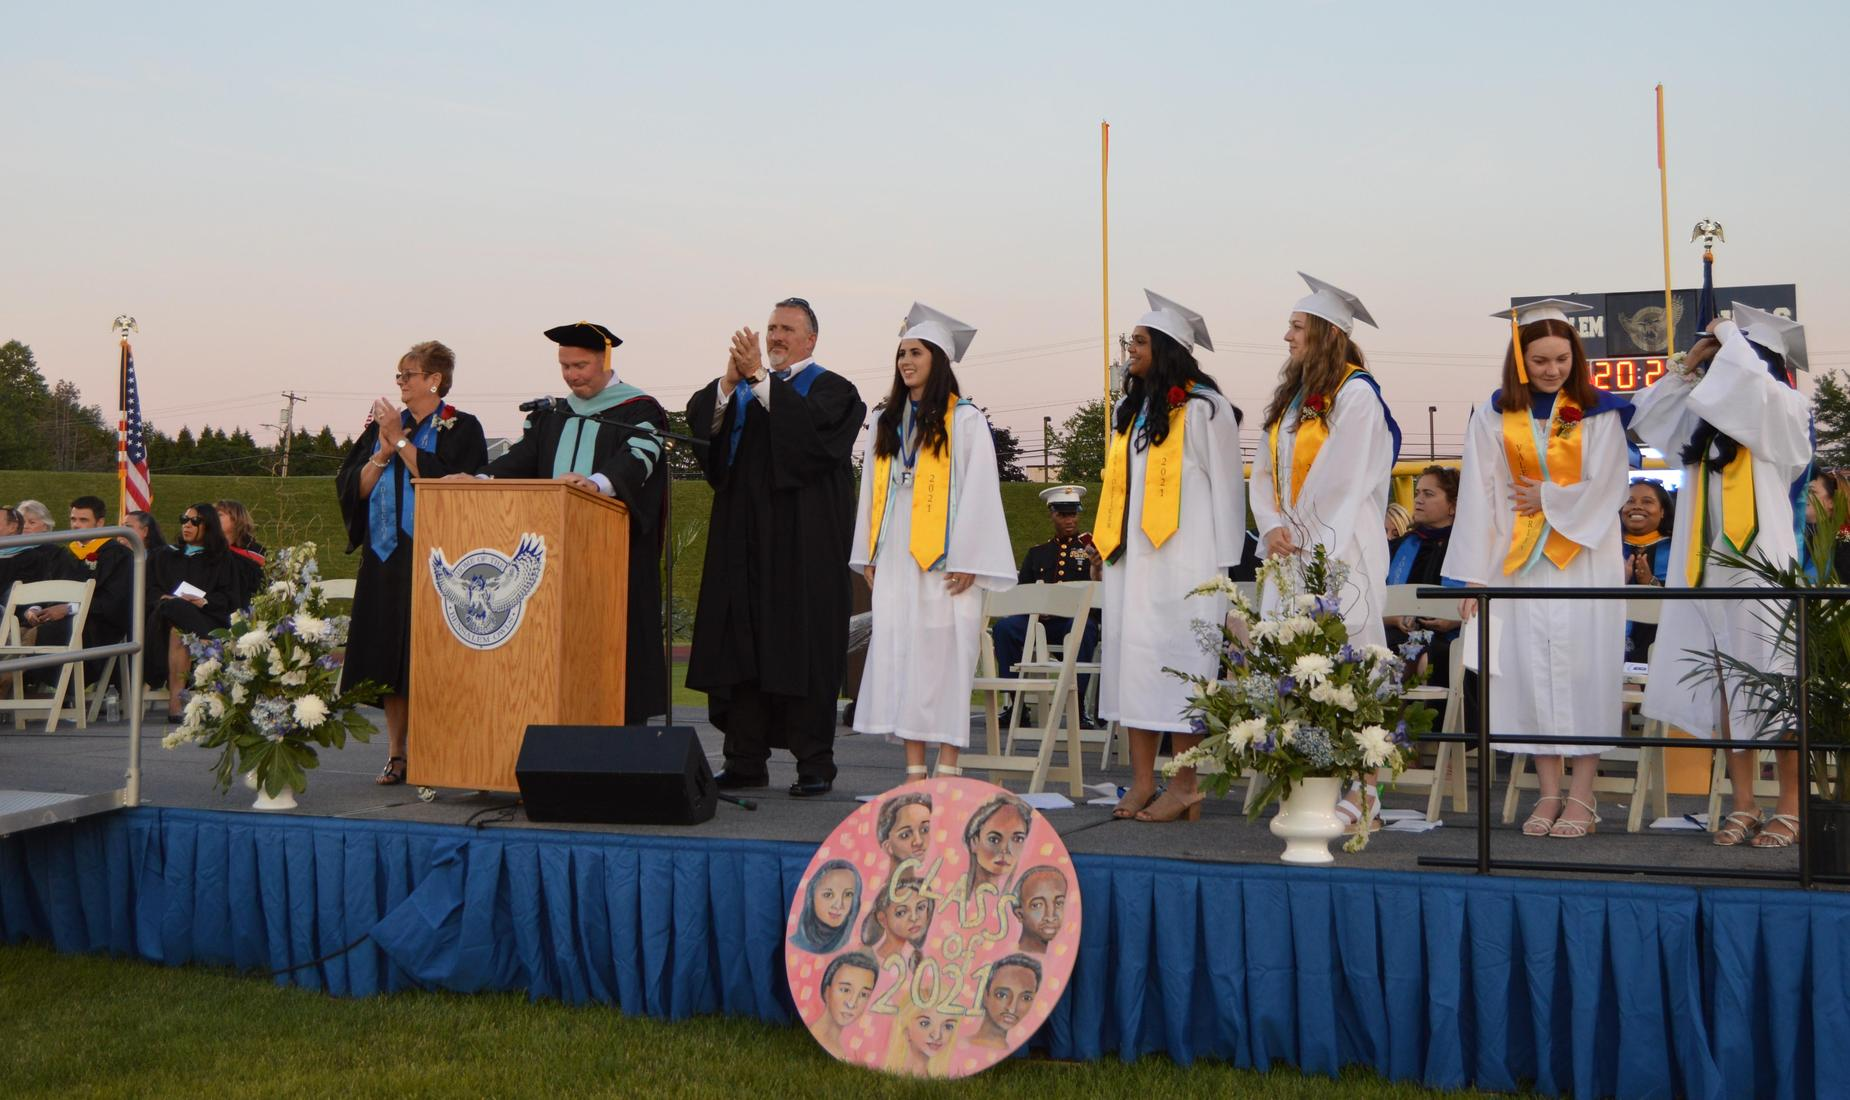 BHS Class of 2021 Commencement - 5 female seniors in white caps and gowns standing on the dais